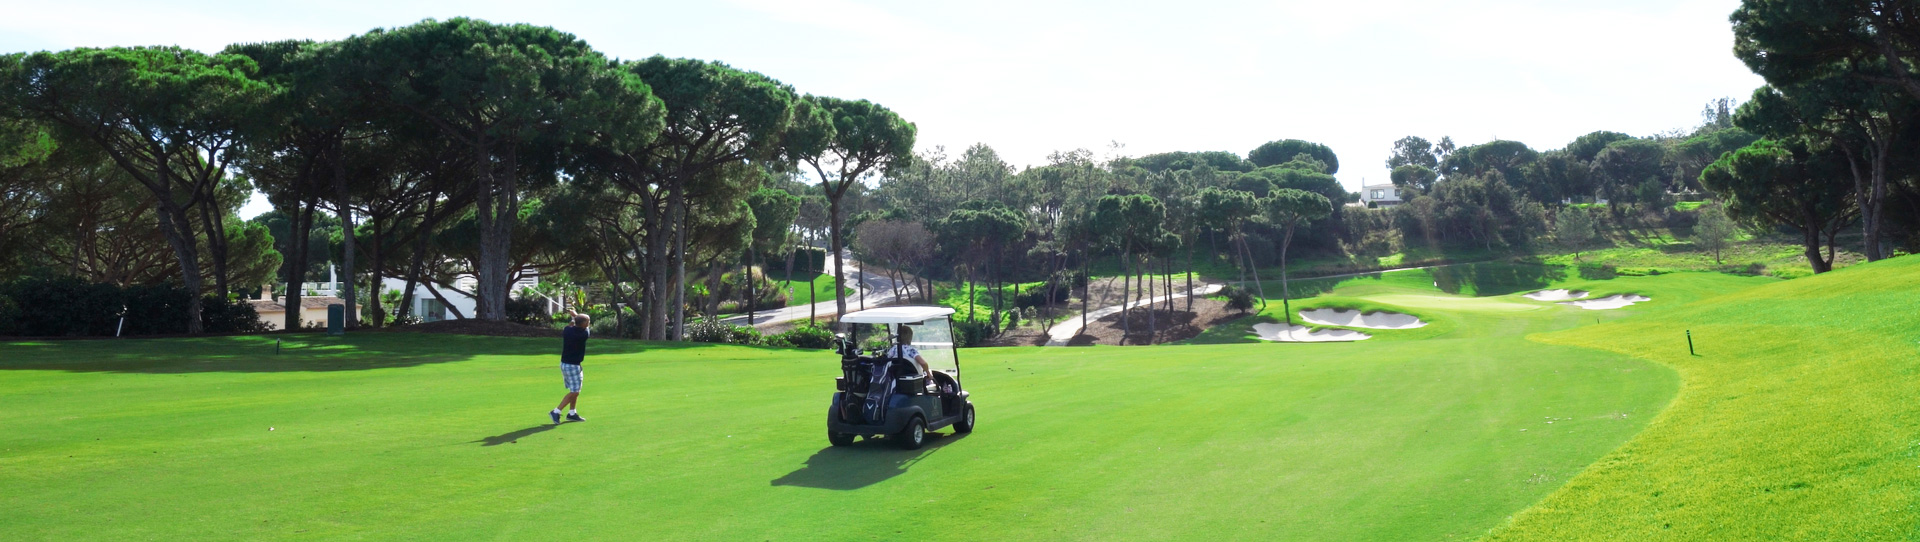 Quinta do Lago Golf Experience - Photo 3